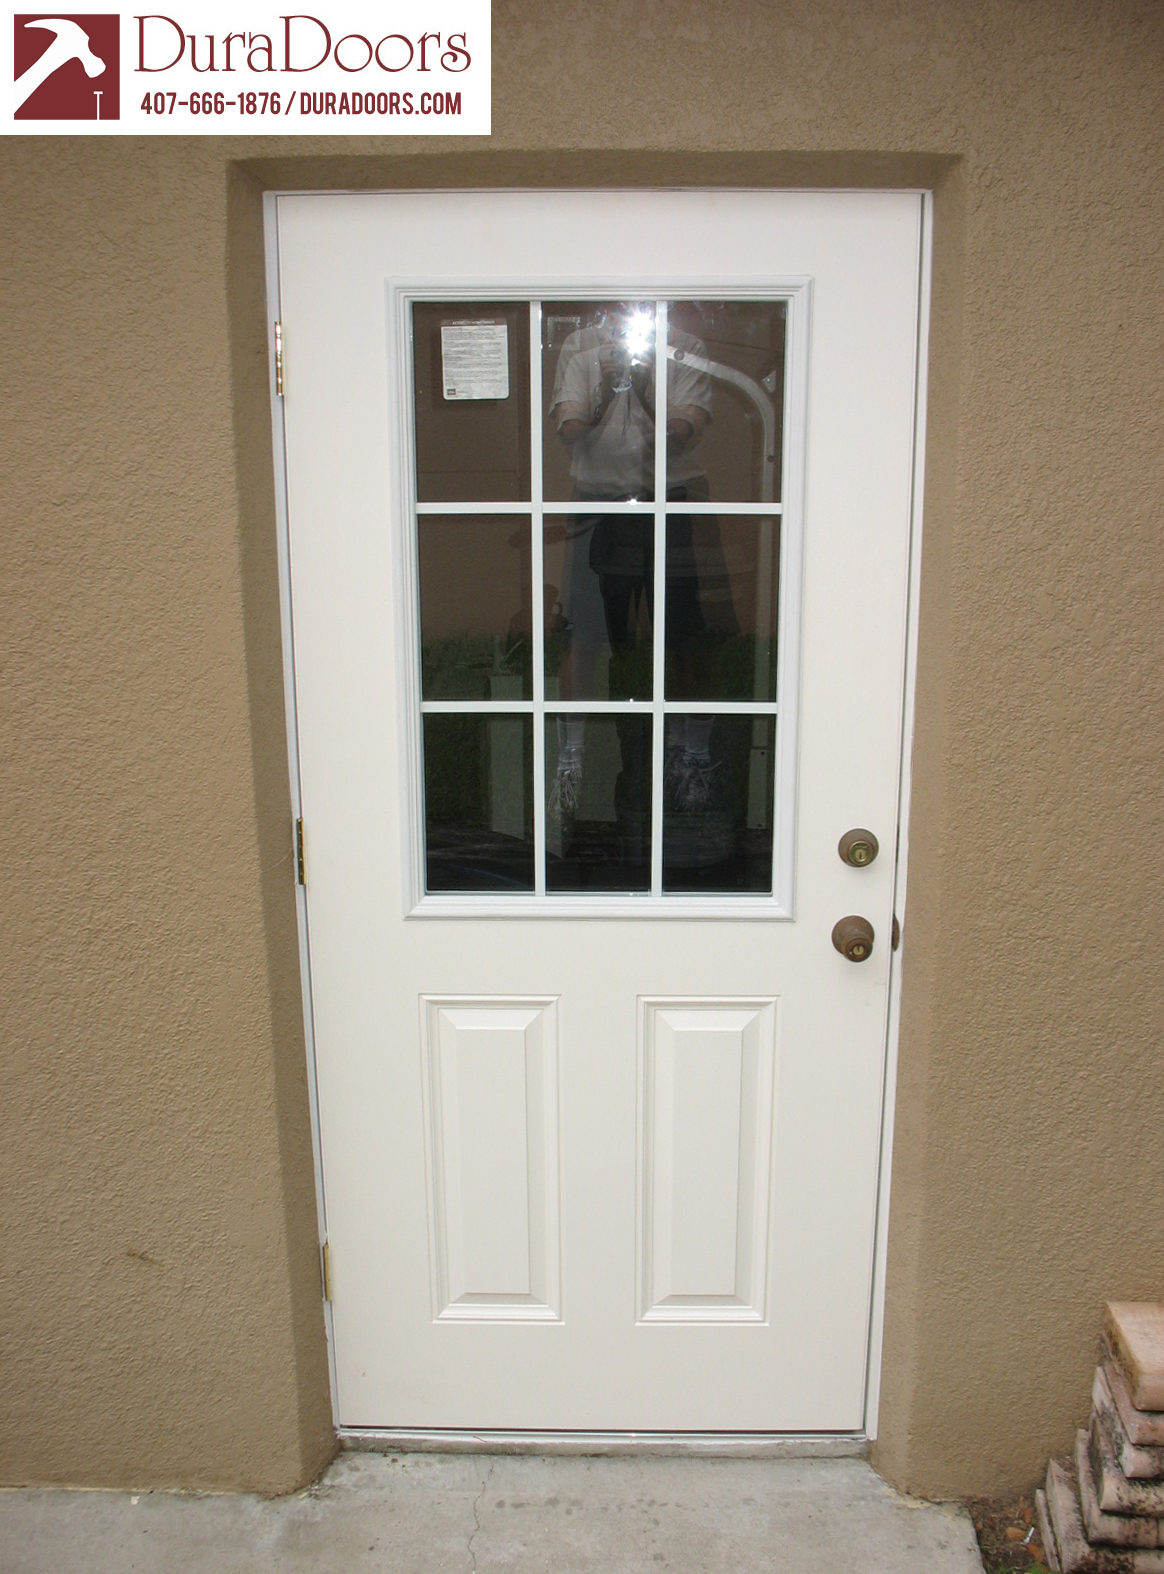 We Installed This Plastpro Smooth Fibergl 9 Lite Door For A Customer In Clermont Fl It Replaced Steel Which Had Wood Edges And Frame That